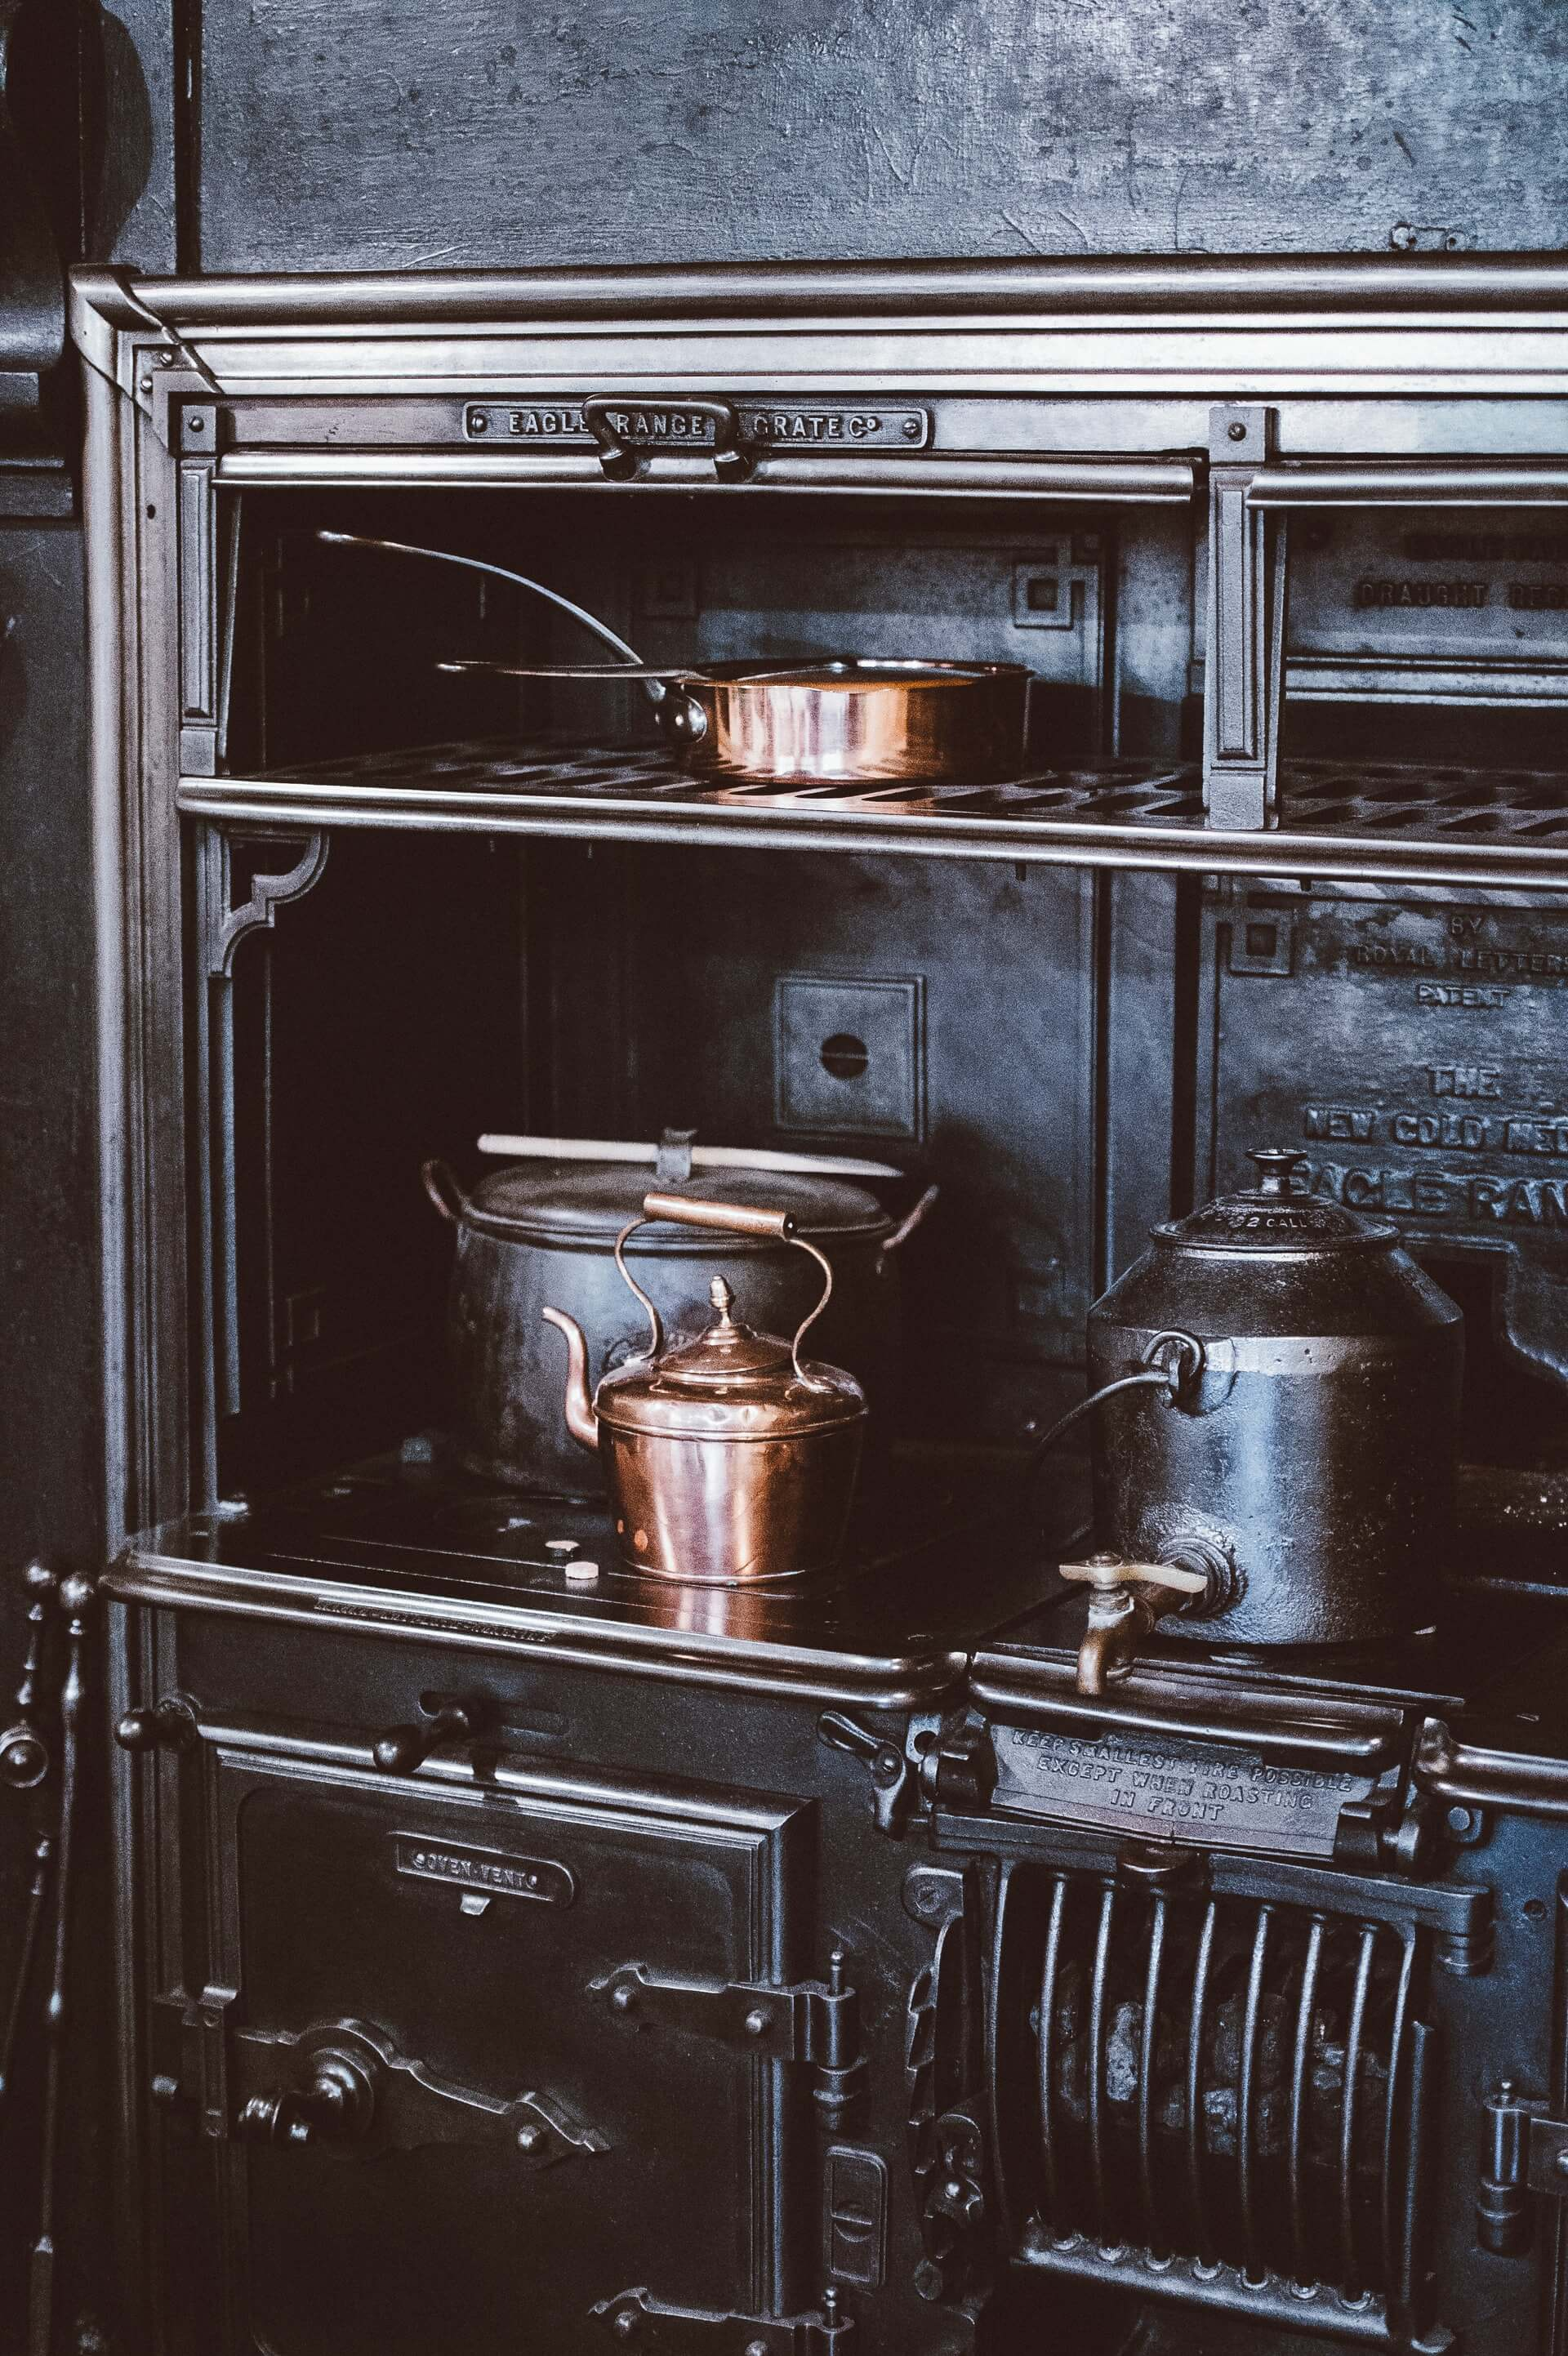 pots and copper kettle and pans placed on a stainless steel stove